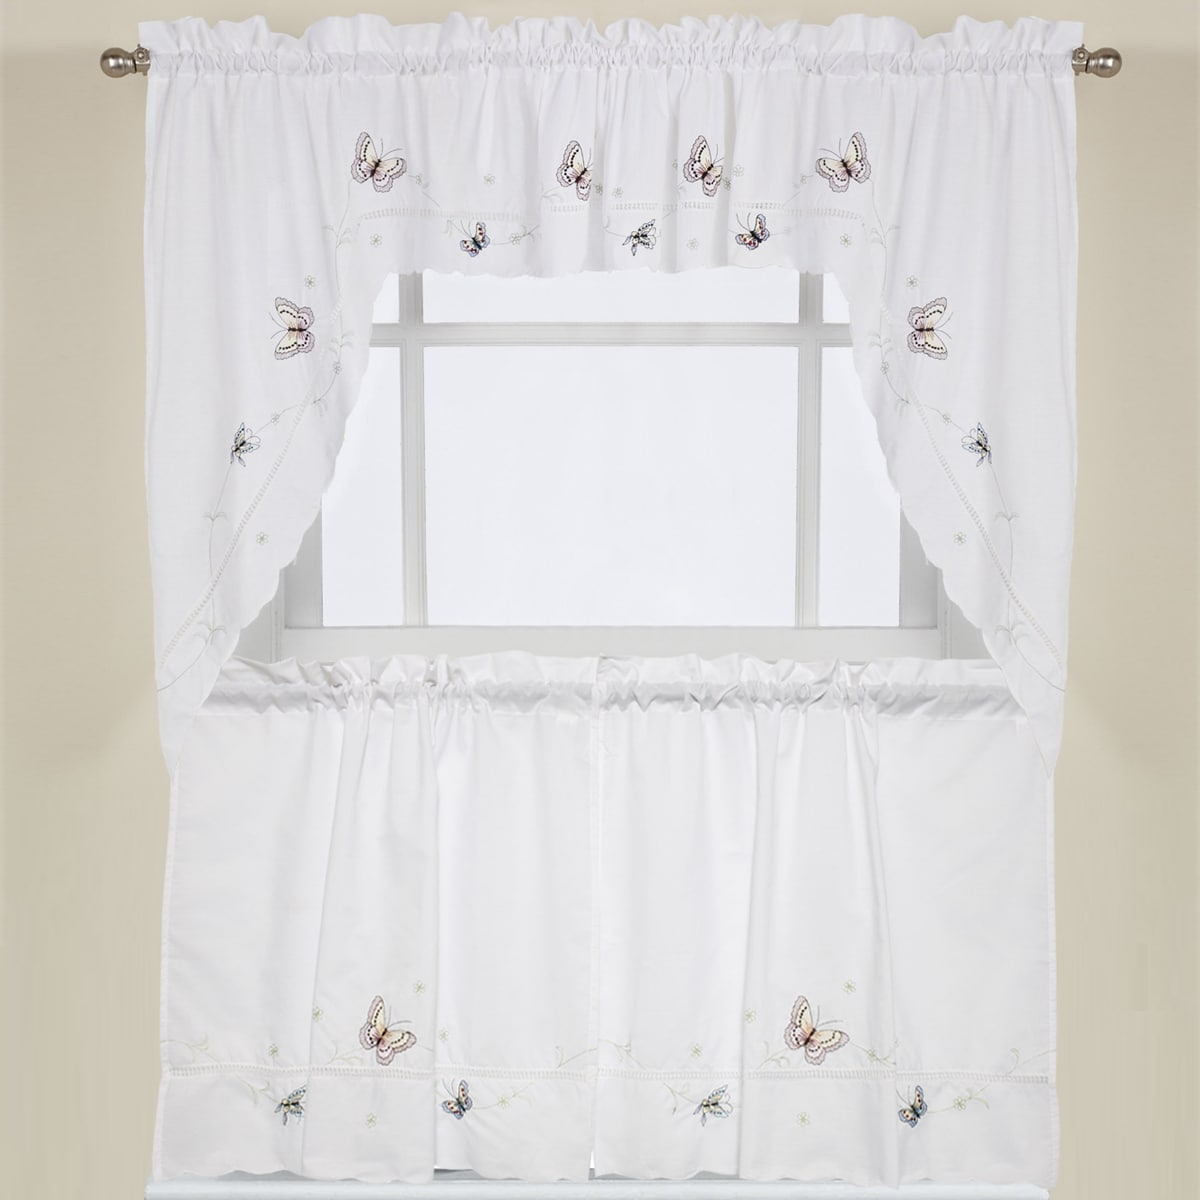 Embroidered Fluttering Butterfly Kitchen Curtains- Tiers,...